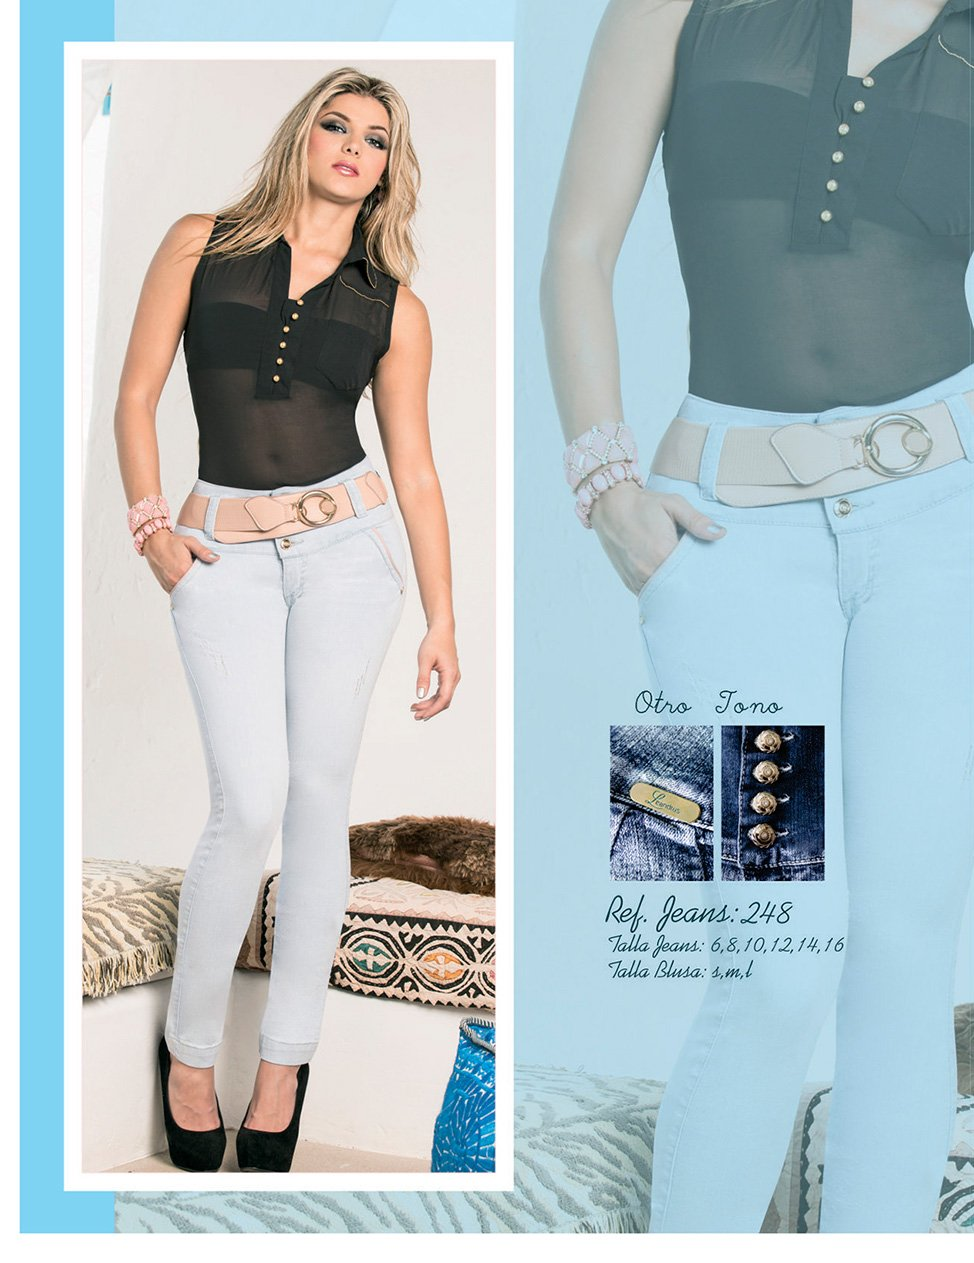 Amazon.com : Jeans Colombianos Levanta Cola Leandrus 248 Dark Blue - Us Size 7-8 : Everything Else